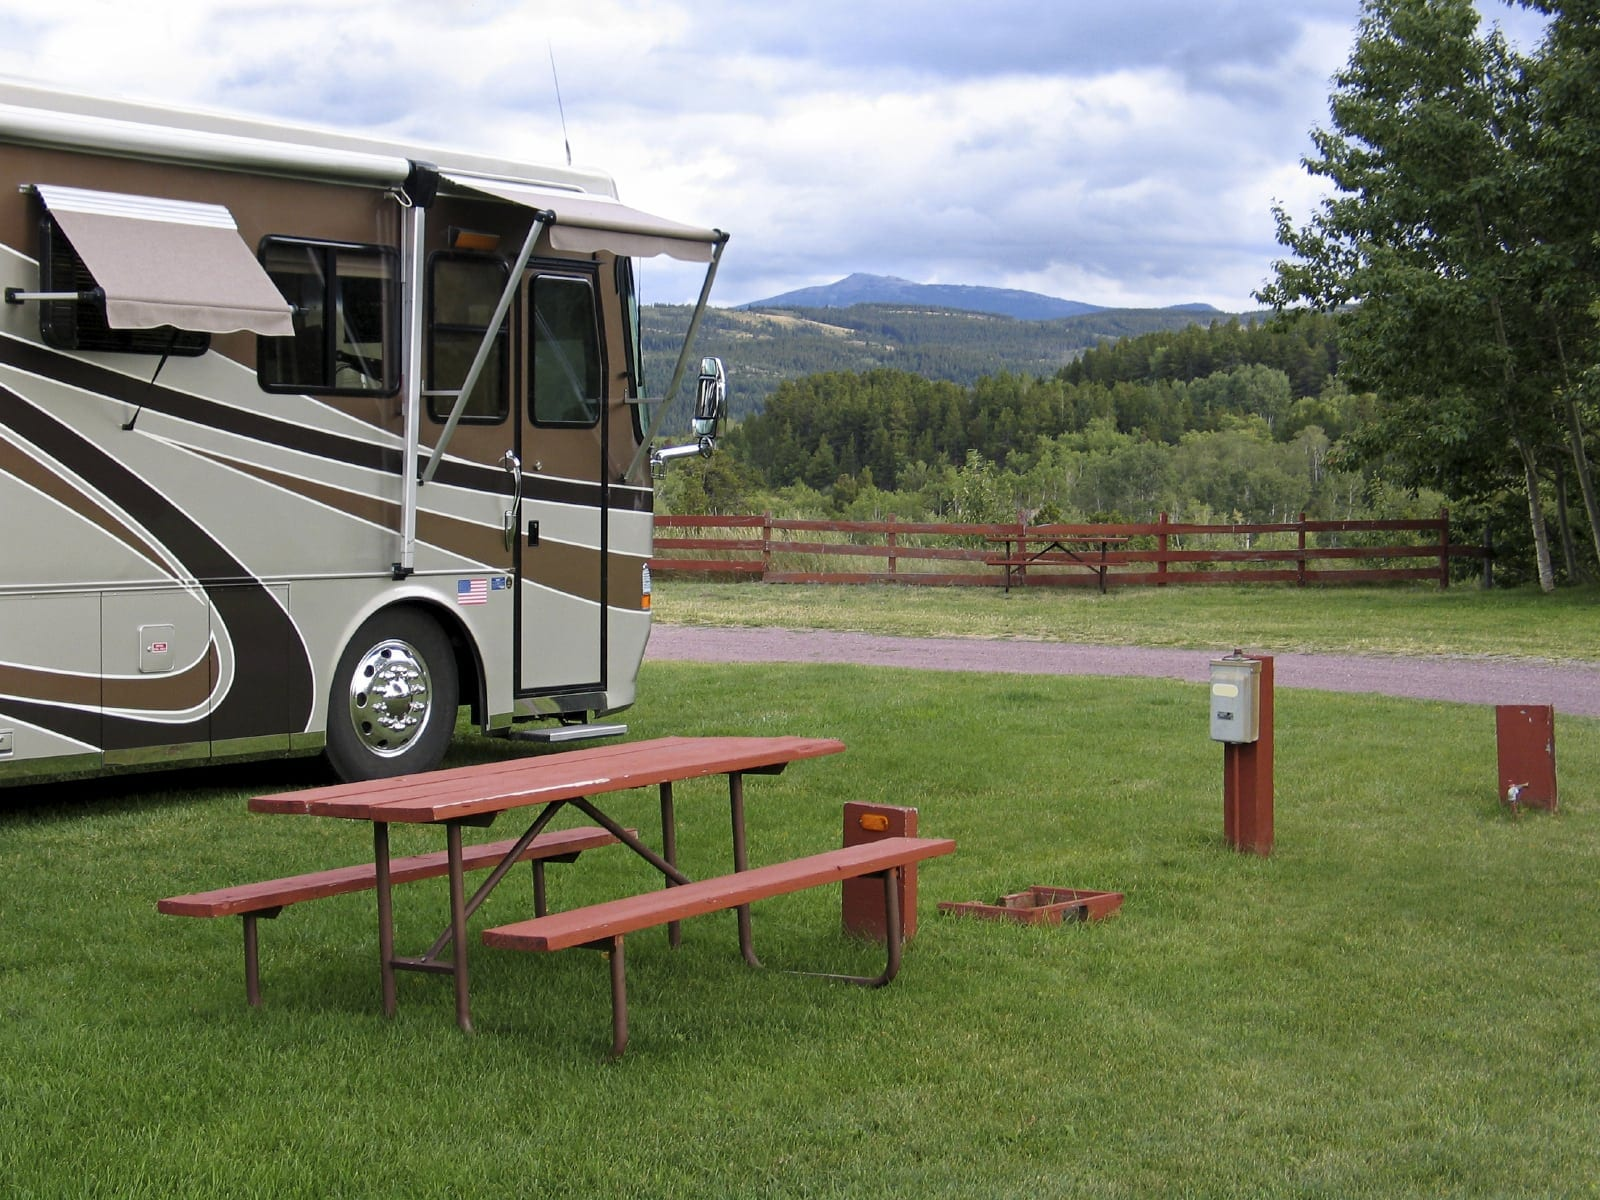 RV Parked At A Campsite Stock Photo